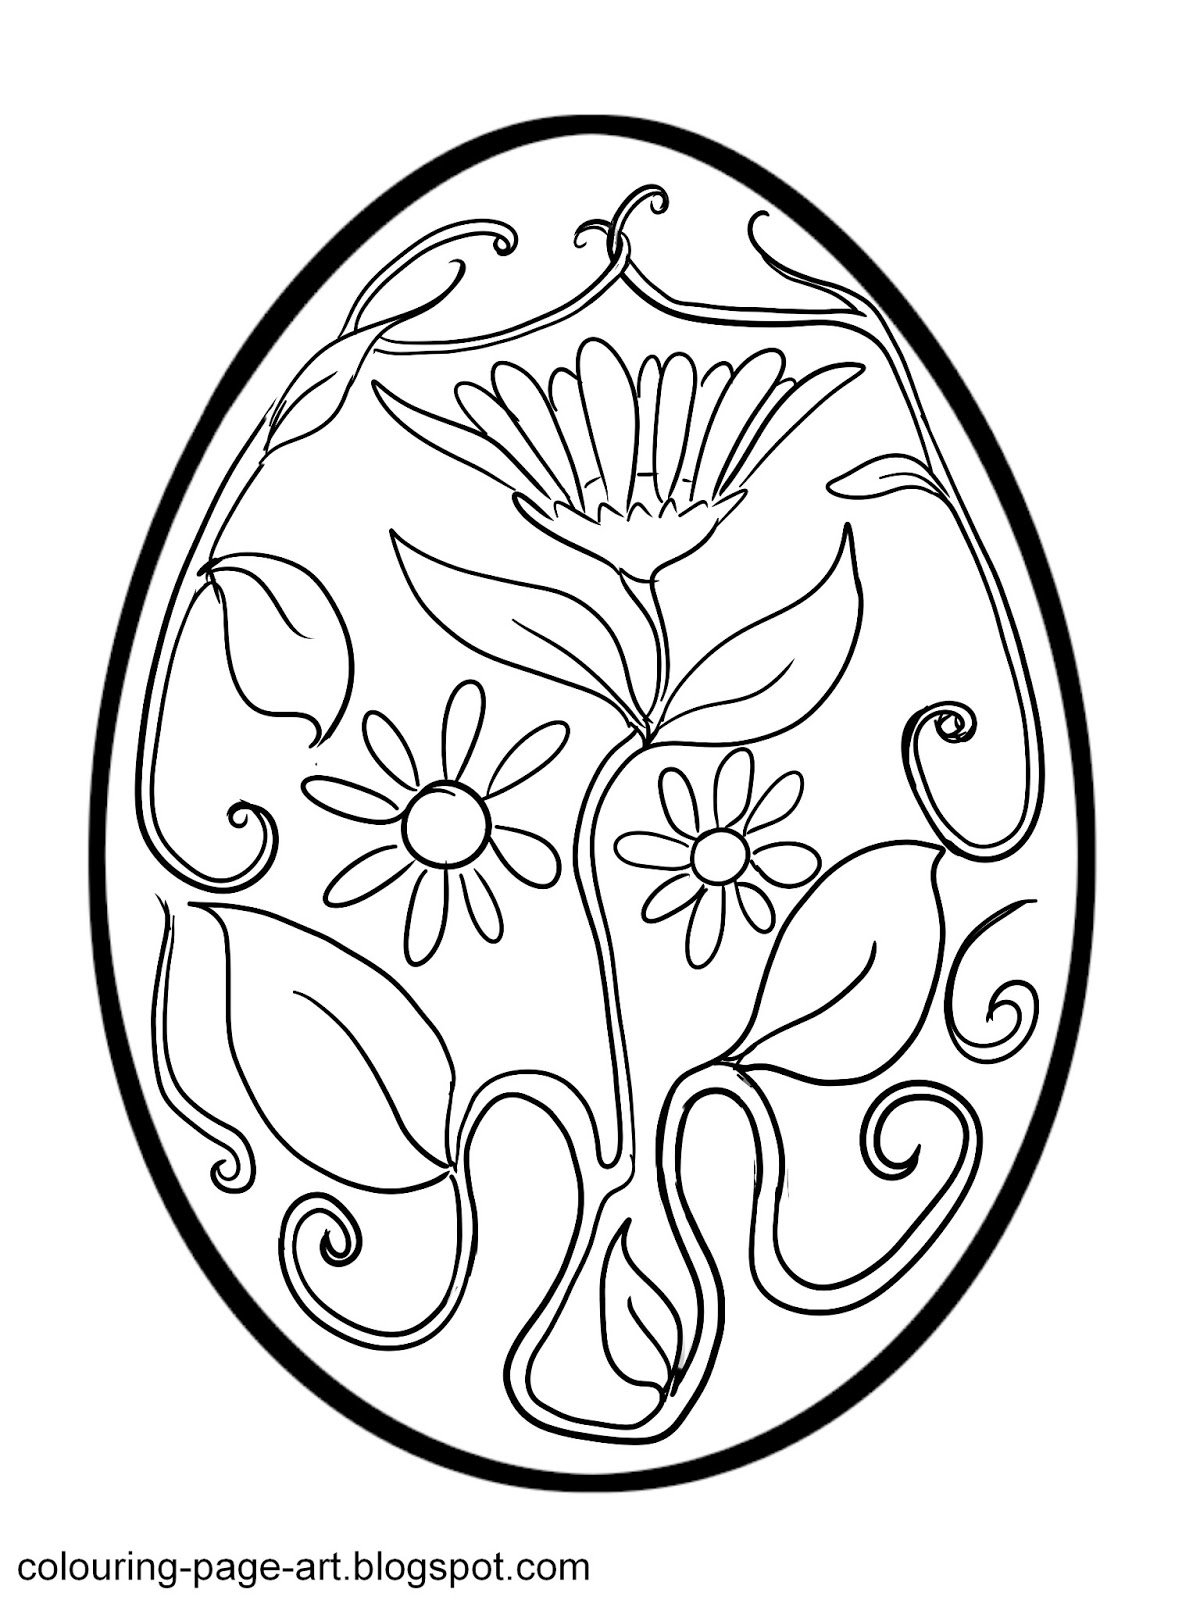 Colouring Page Art Symbol amp Abstract